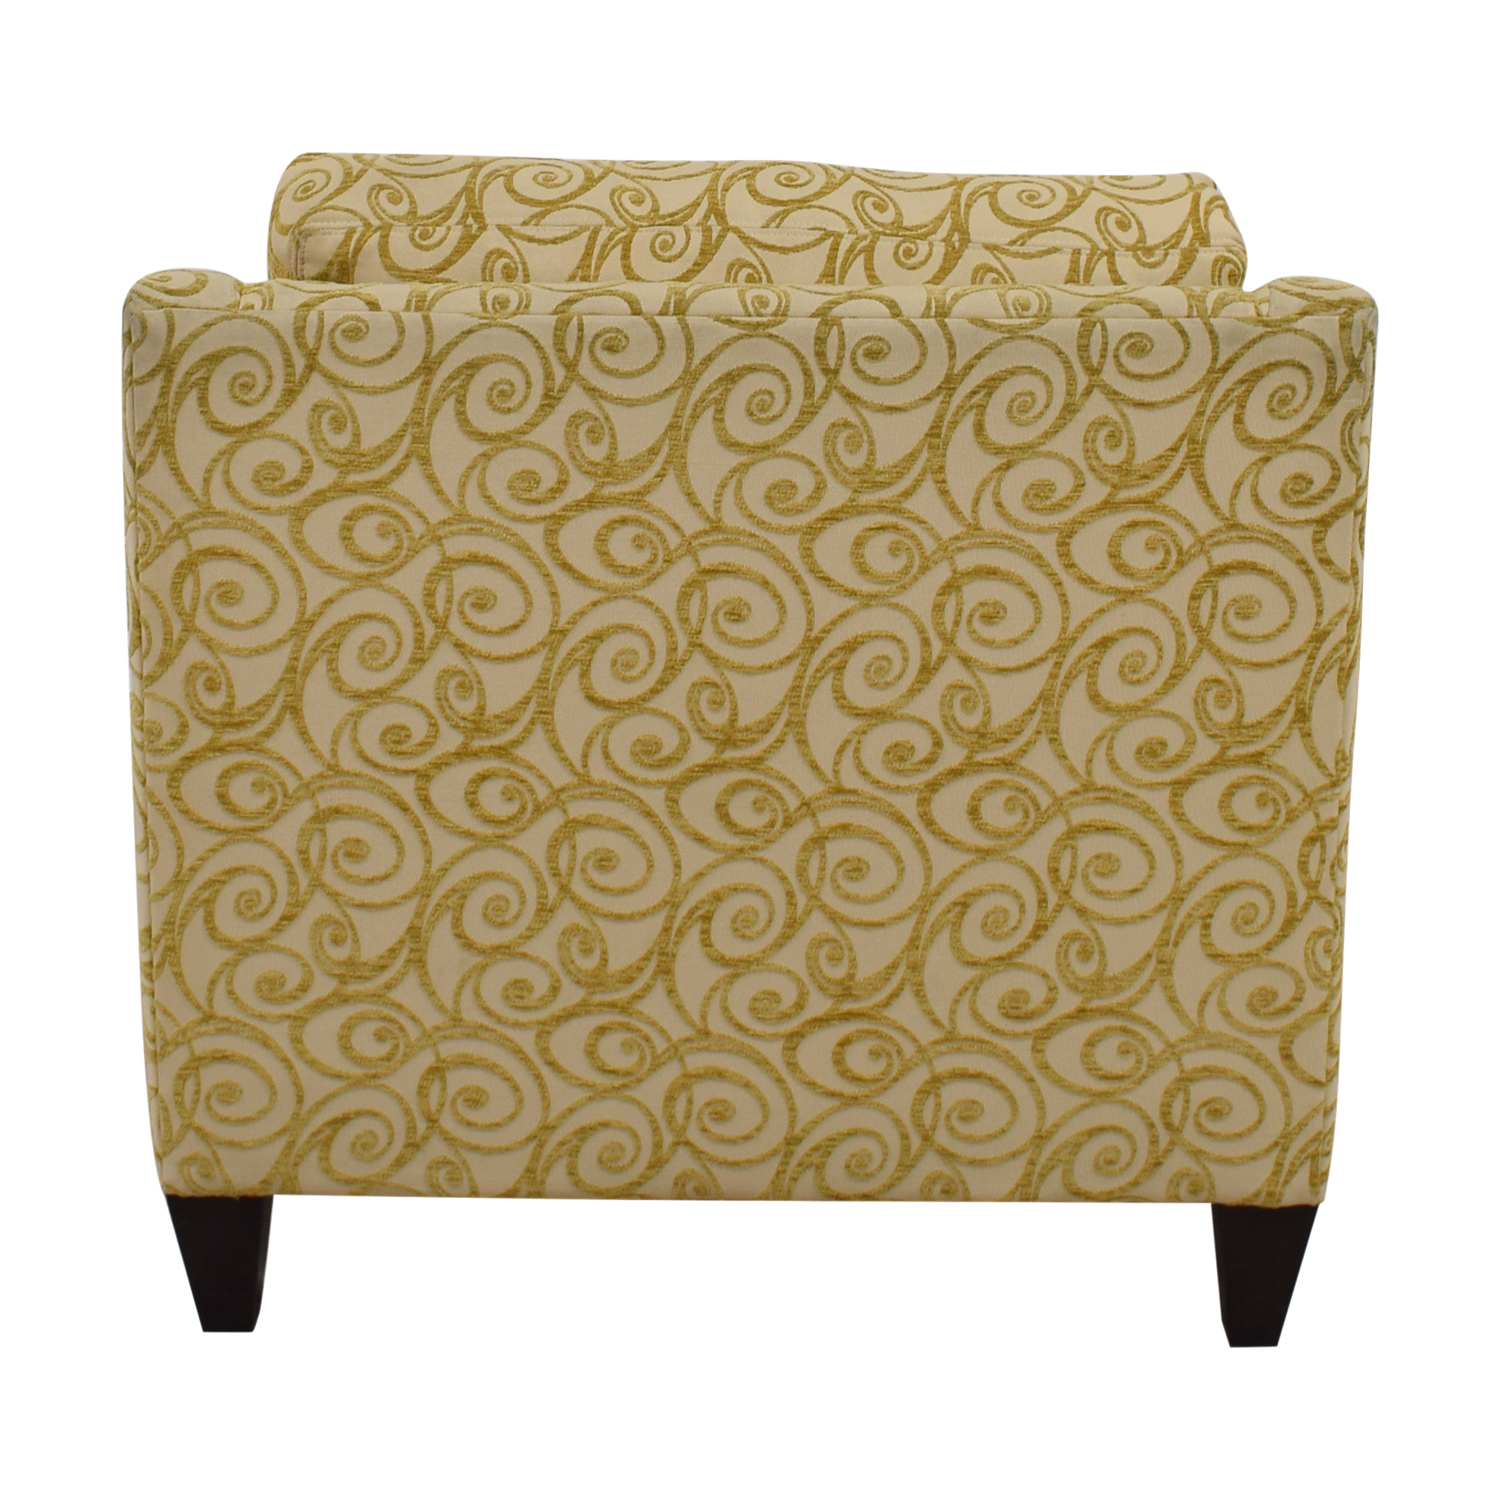 Ethan Allen Ethan Allen Beige and Gold Monterey Chair and Ottoman Gold, Beige